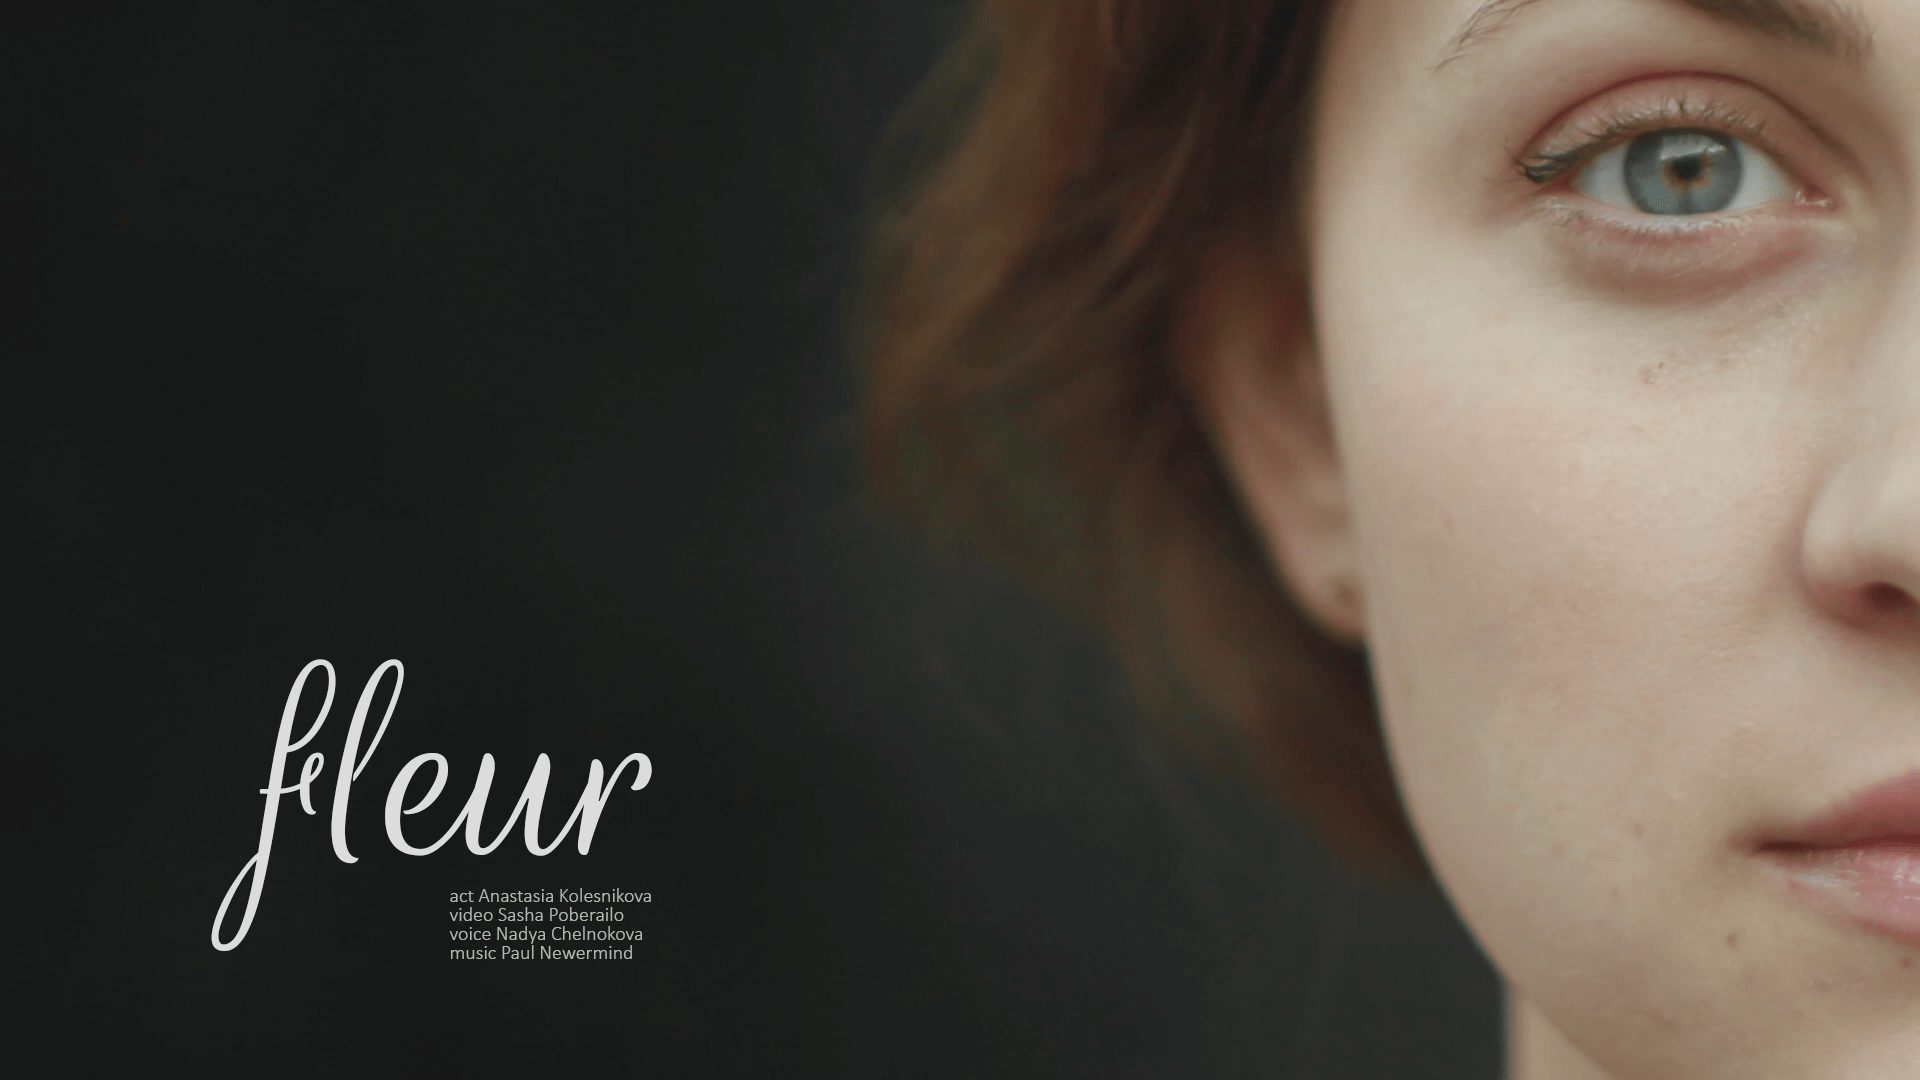 fleur short fashion film - actress, fashion, french, mood, music